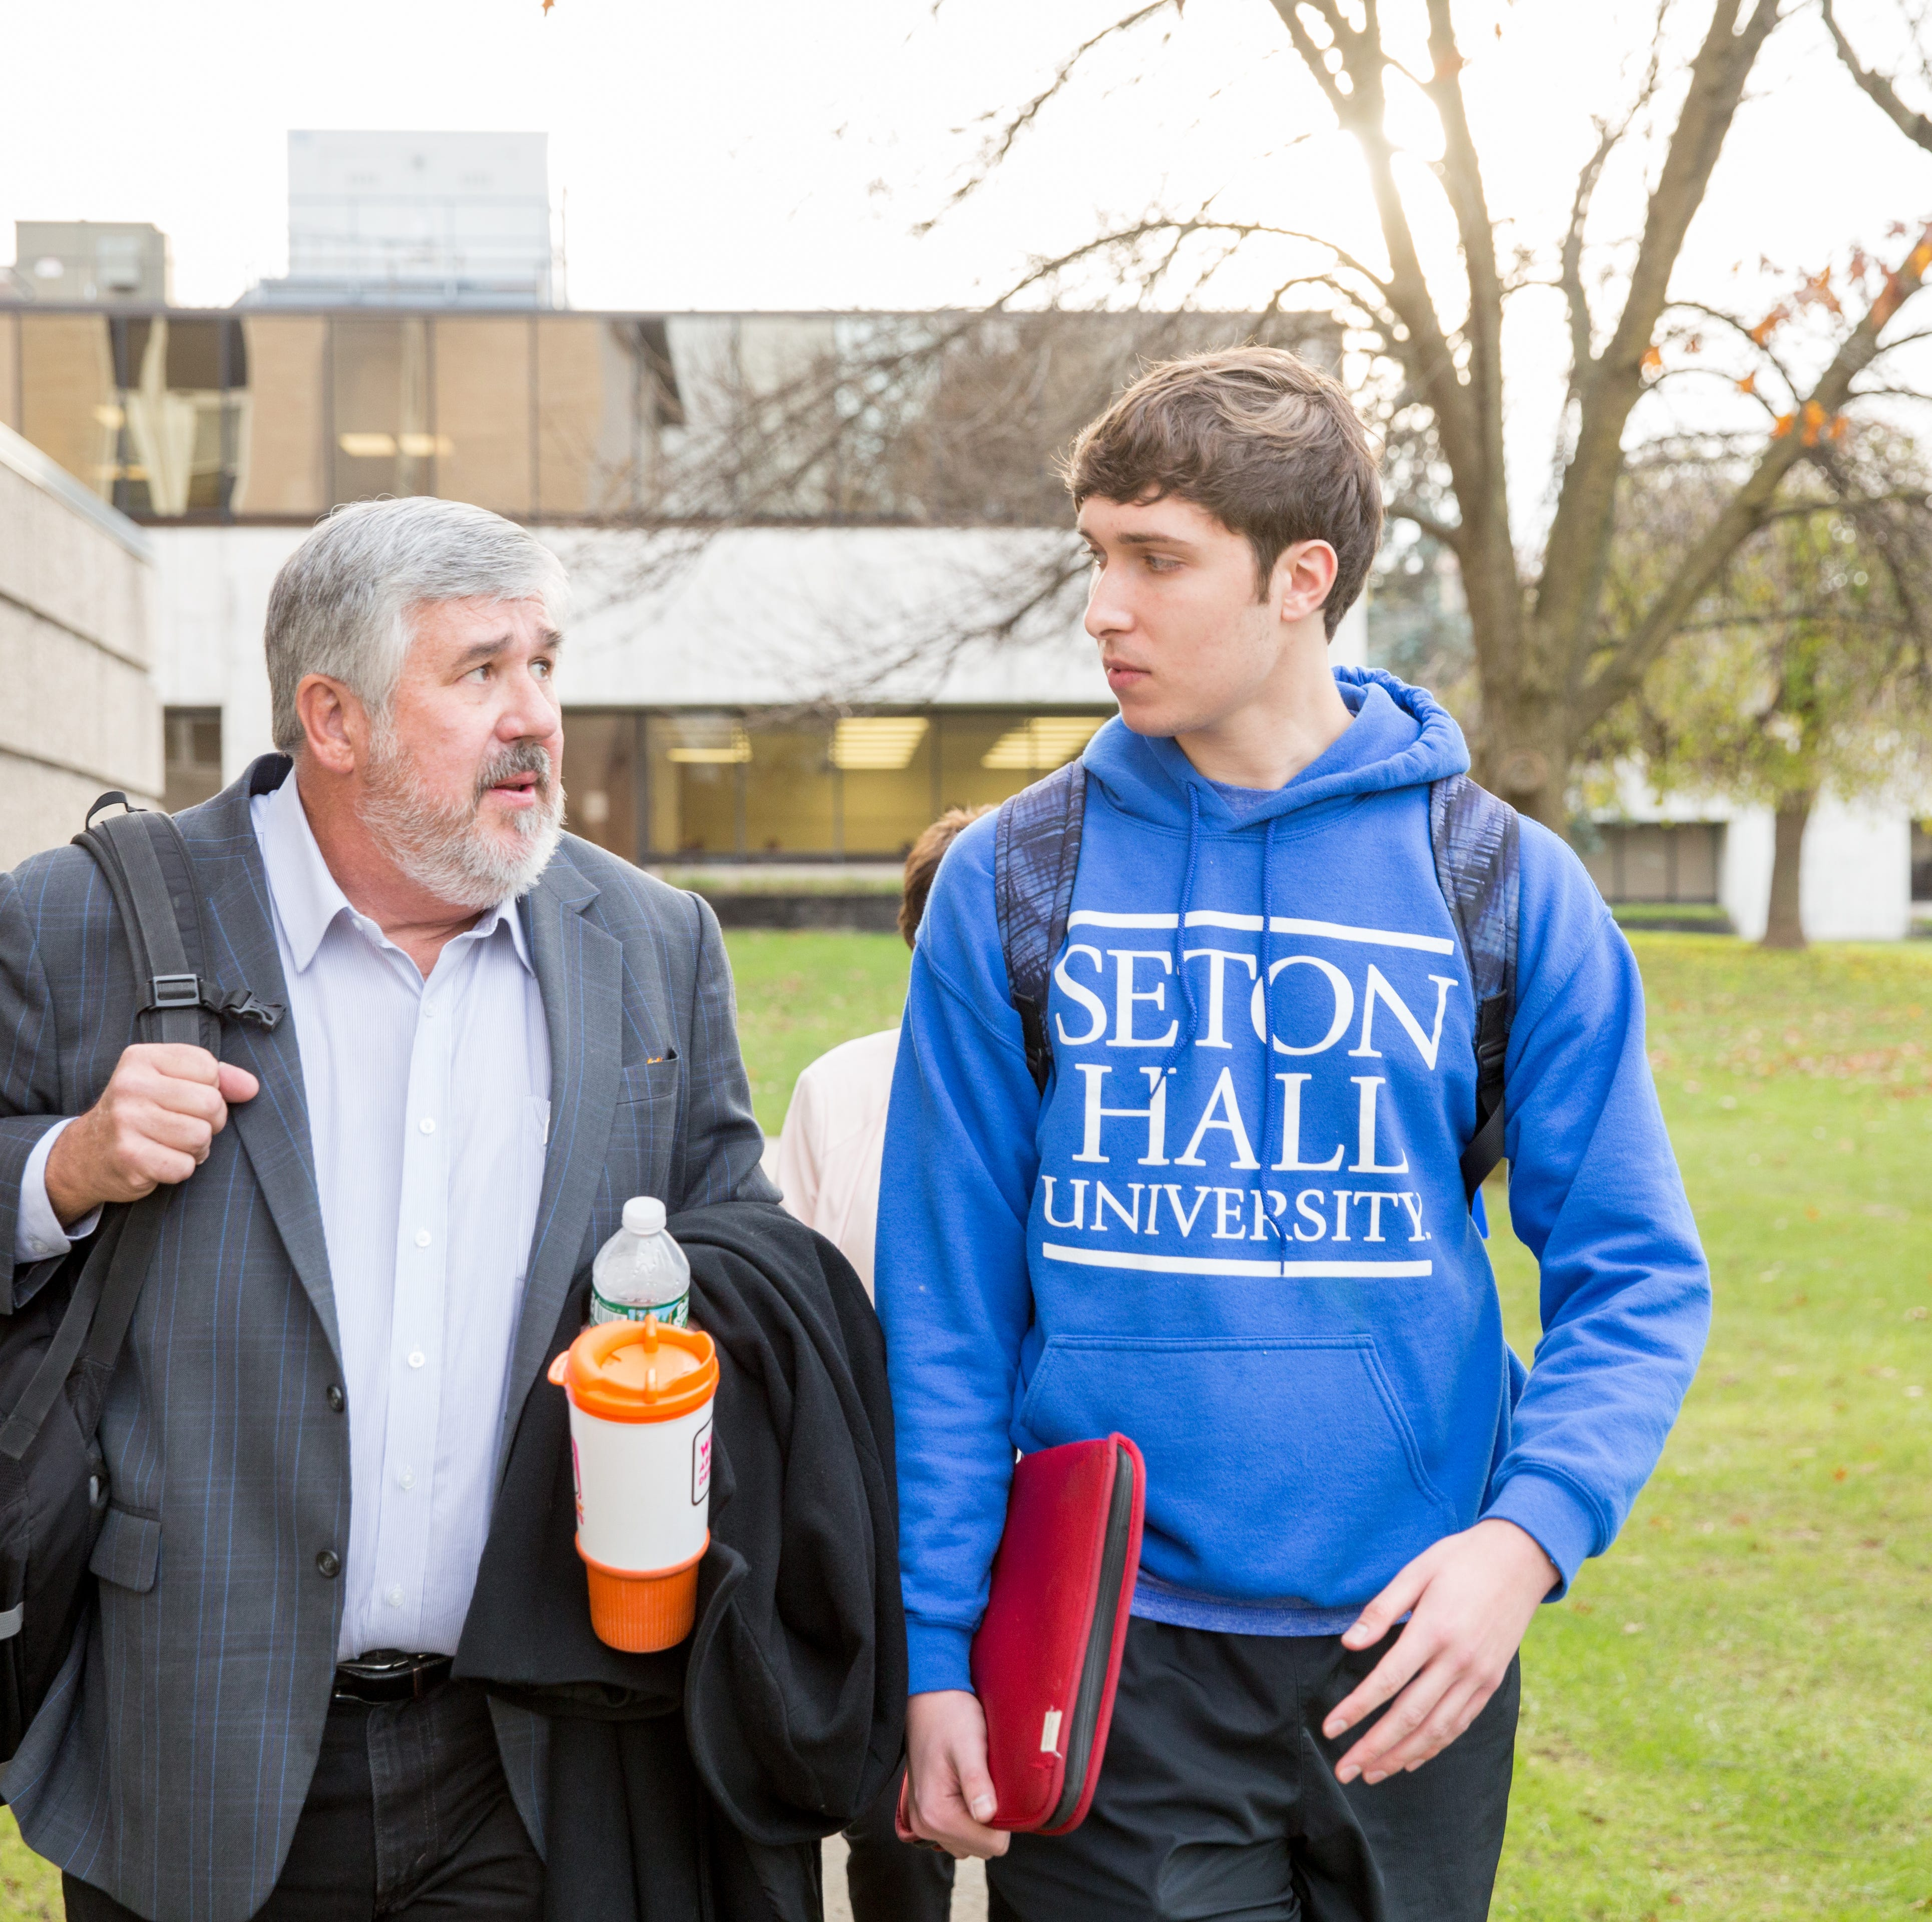 Bob Ley hopes to offer 'useful advice' in Seton Hall commencement speech